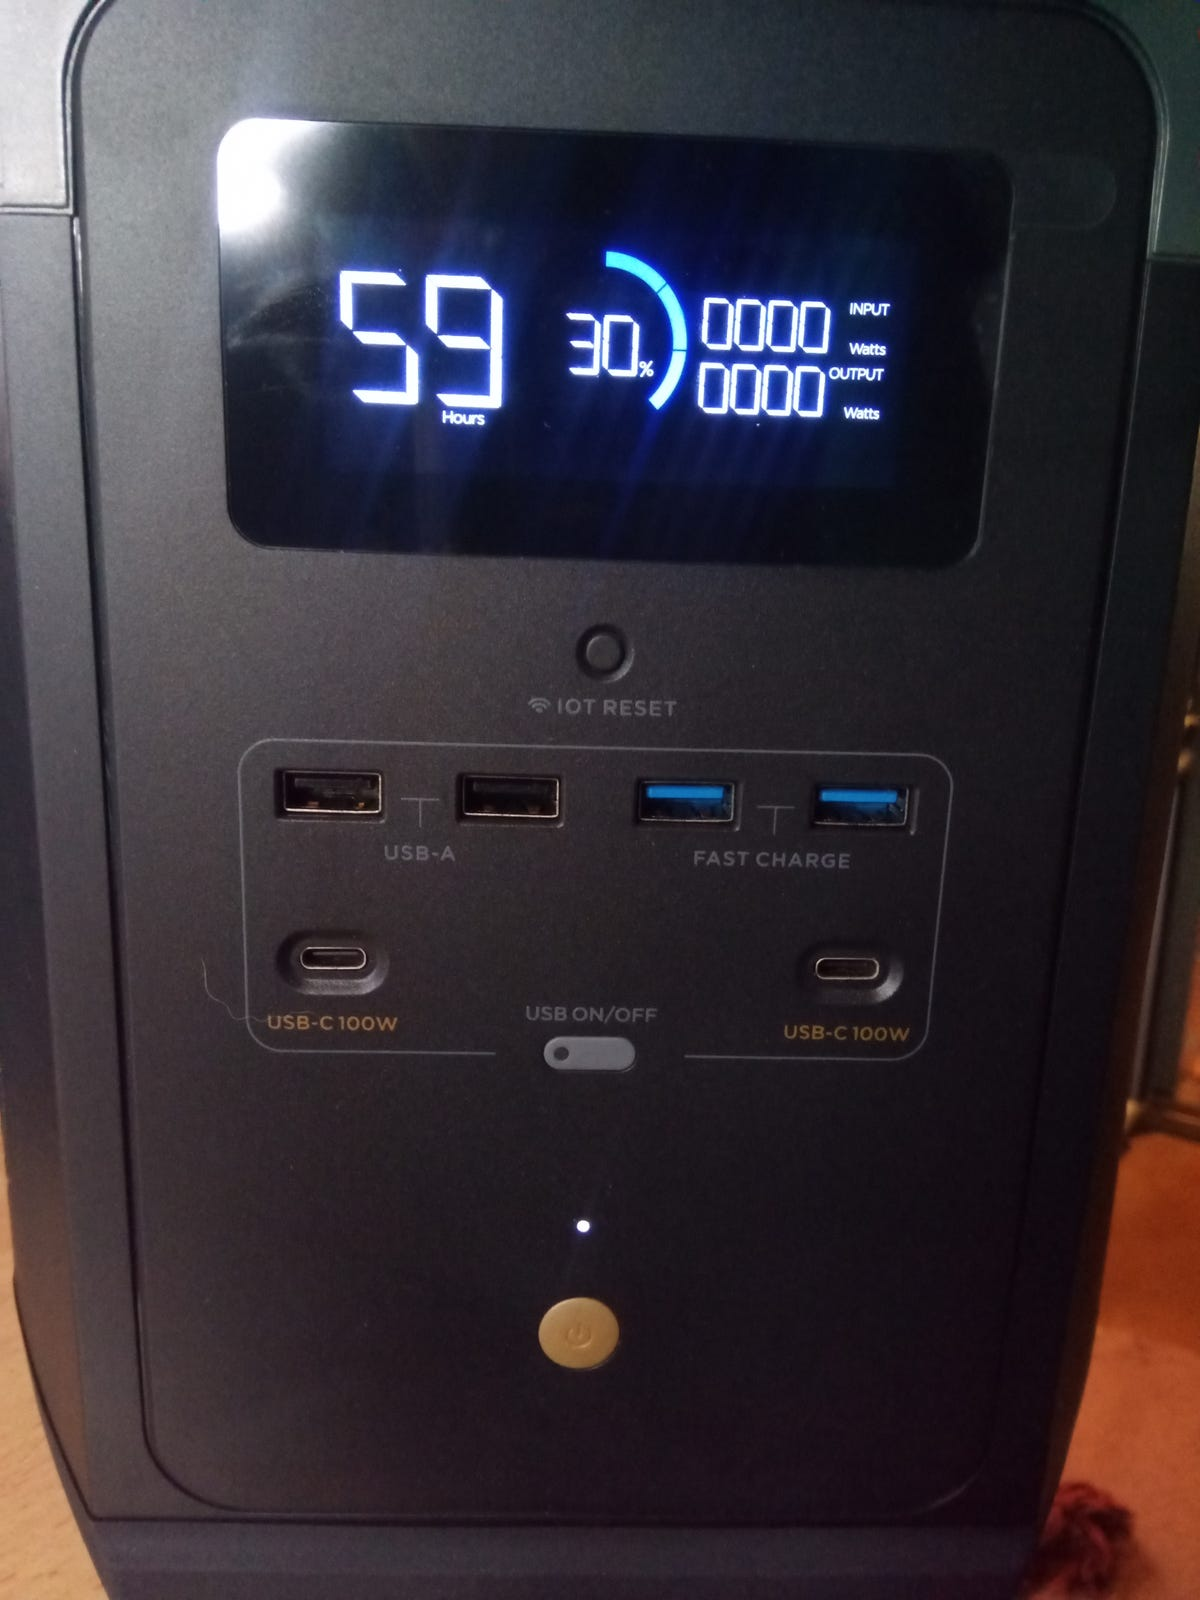 EcoFlow Delta Max portable power station 3000W output and standby time of a year zdnet